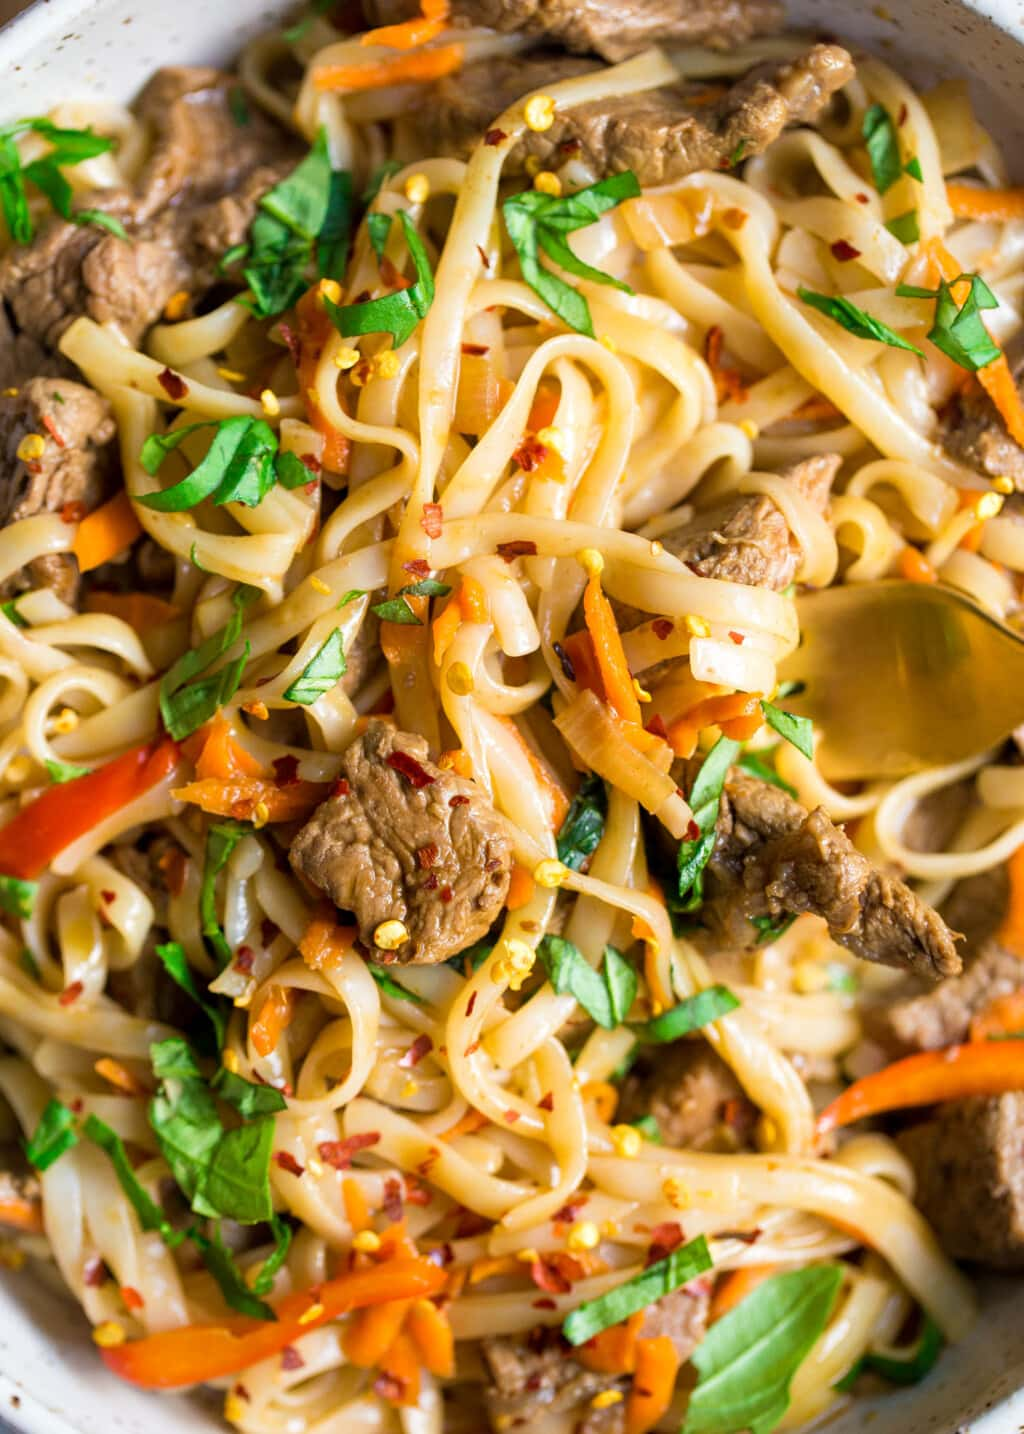 Close up photo of Thai Noodles with Beef, carrots, peppers, and basil